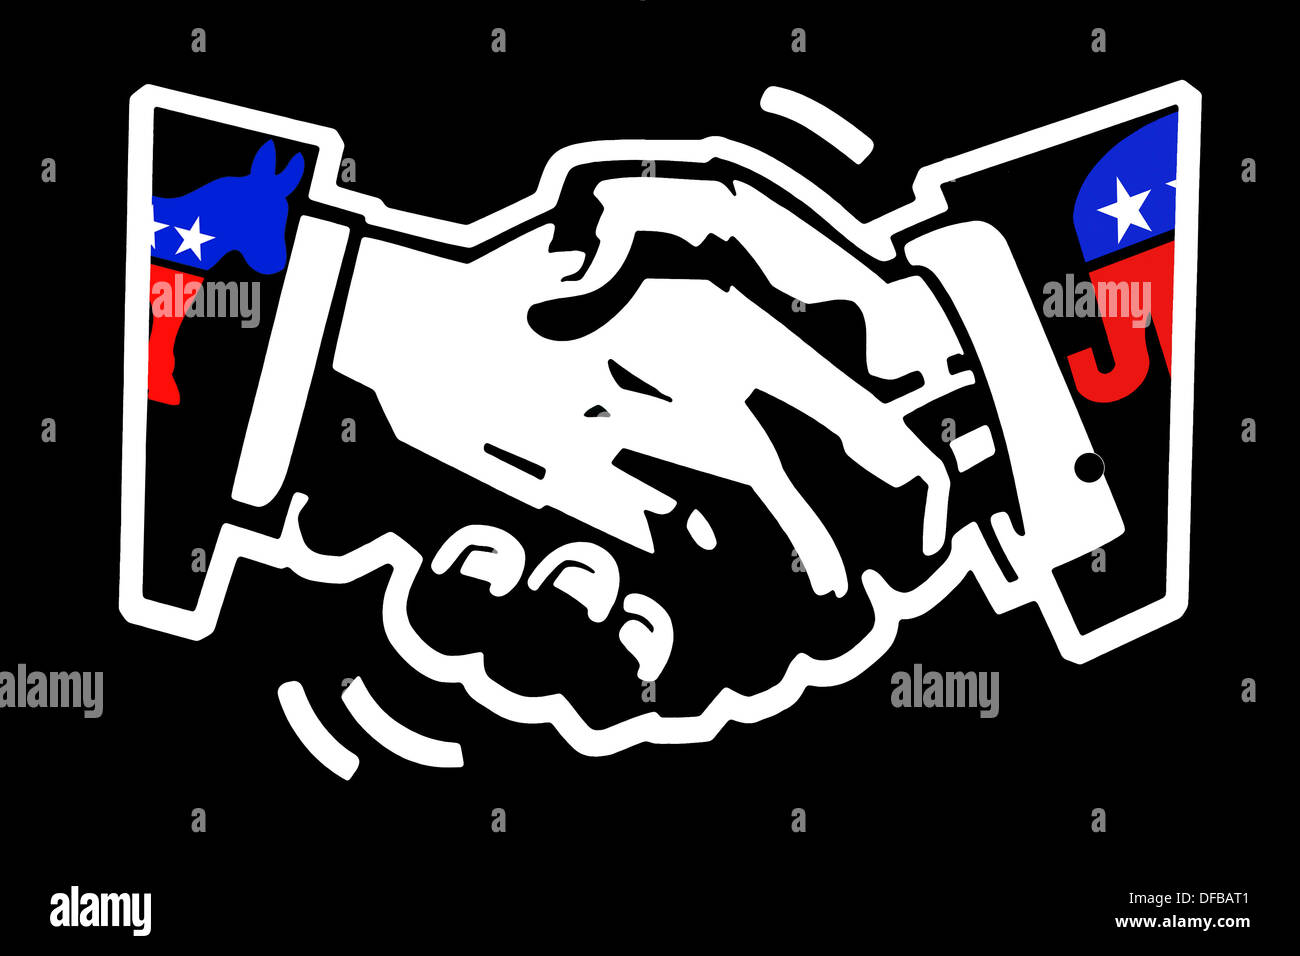 stencil drawing white on black painted wall of a handshake with democratic donkey and republican elephant color mascots - Stock Image